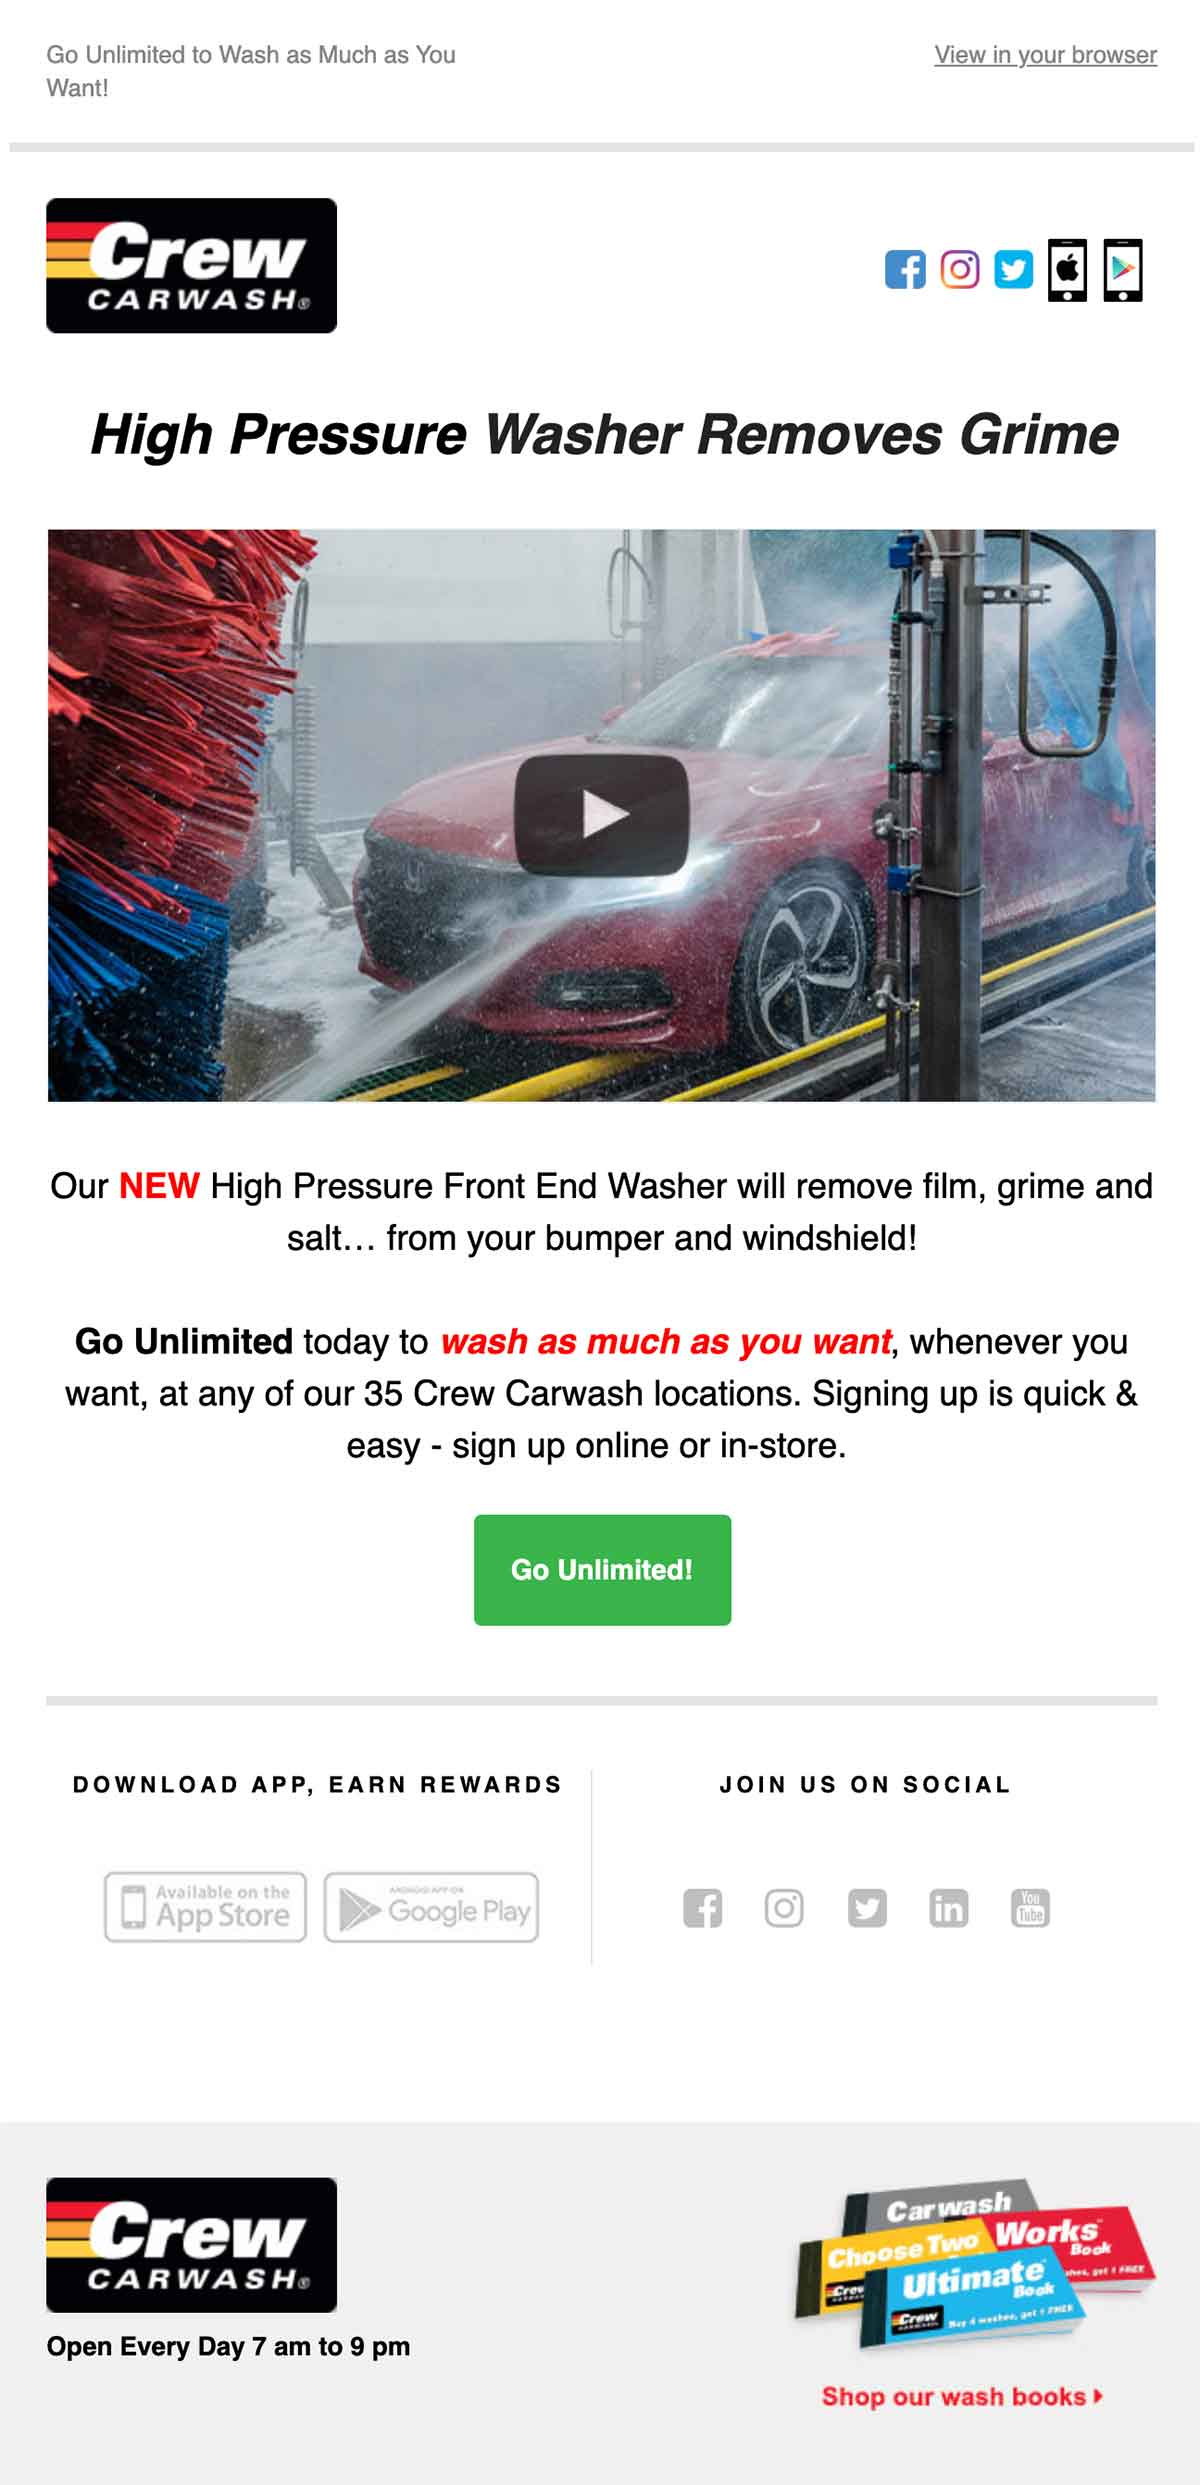 Crew Carwash email advertising their high pressure washer